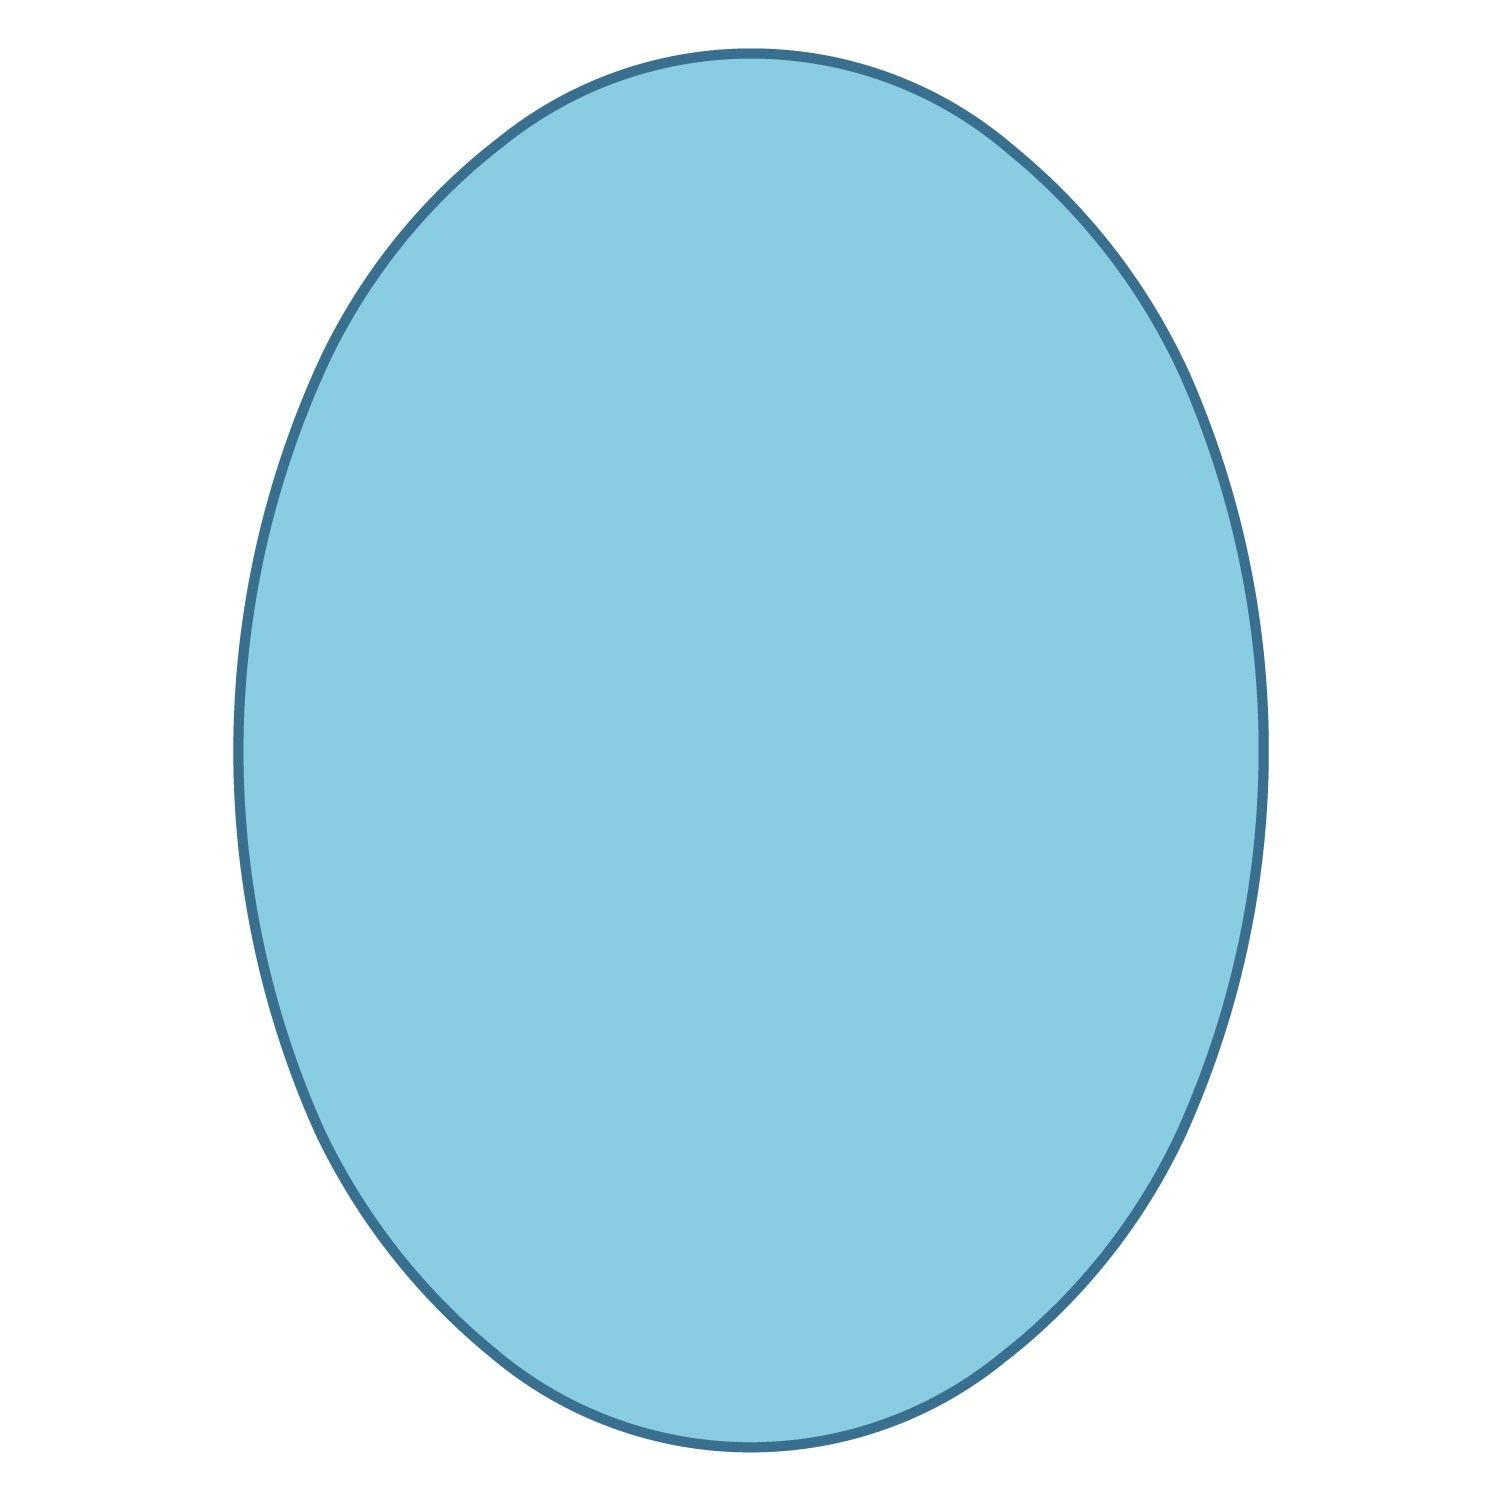 Studio Oval-3 x 4 #compatibilitychart